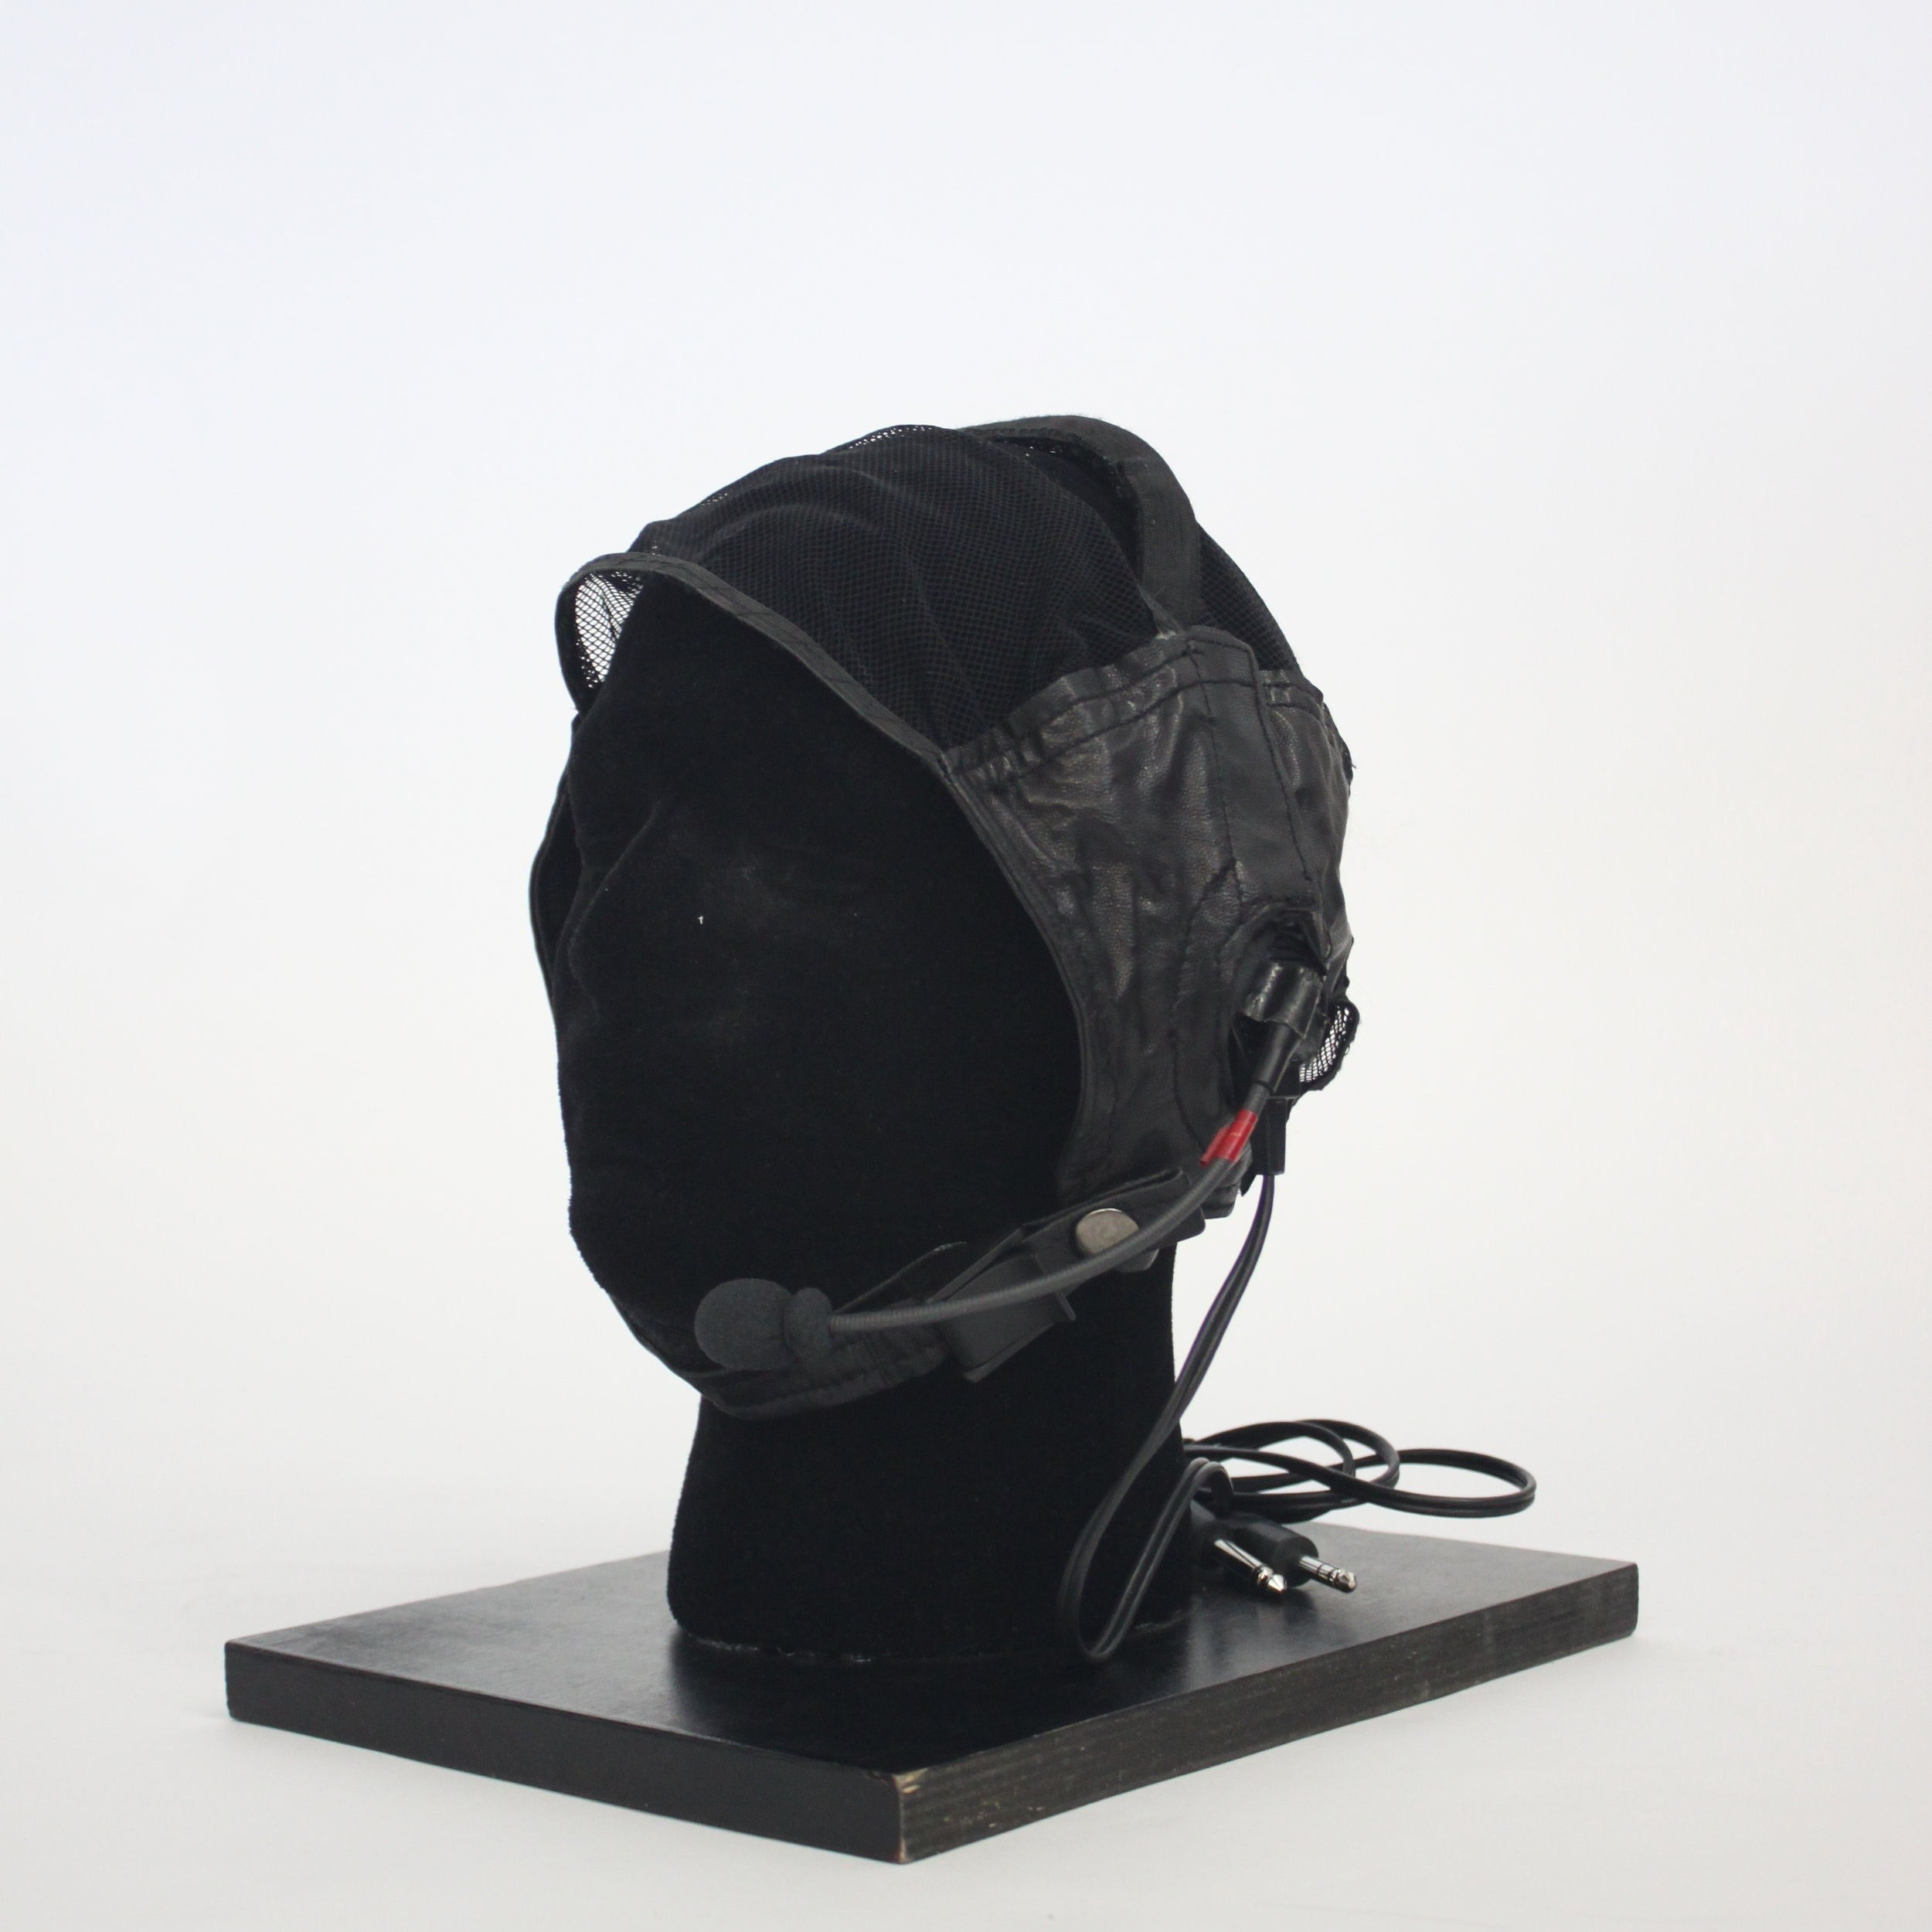 Communication Cap - Adjustable, light weight communications caps, designed for use inside a space suit